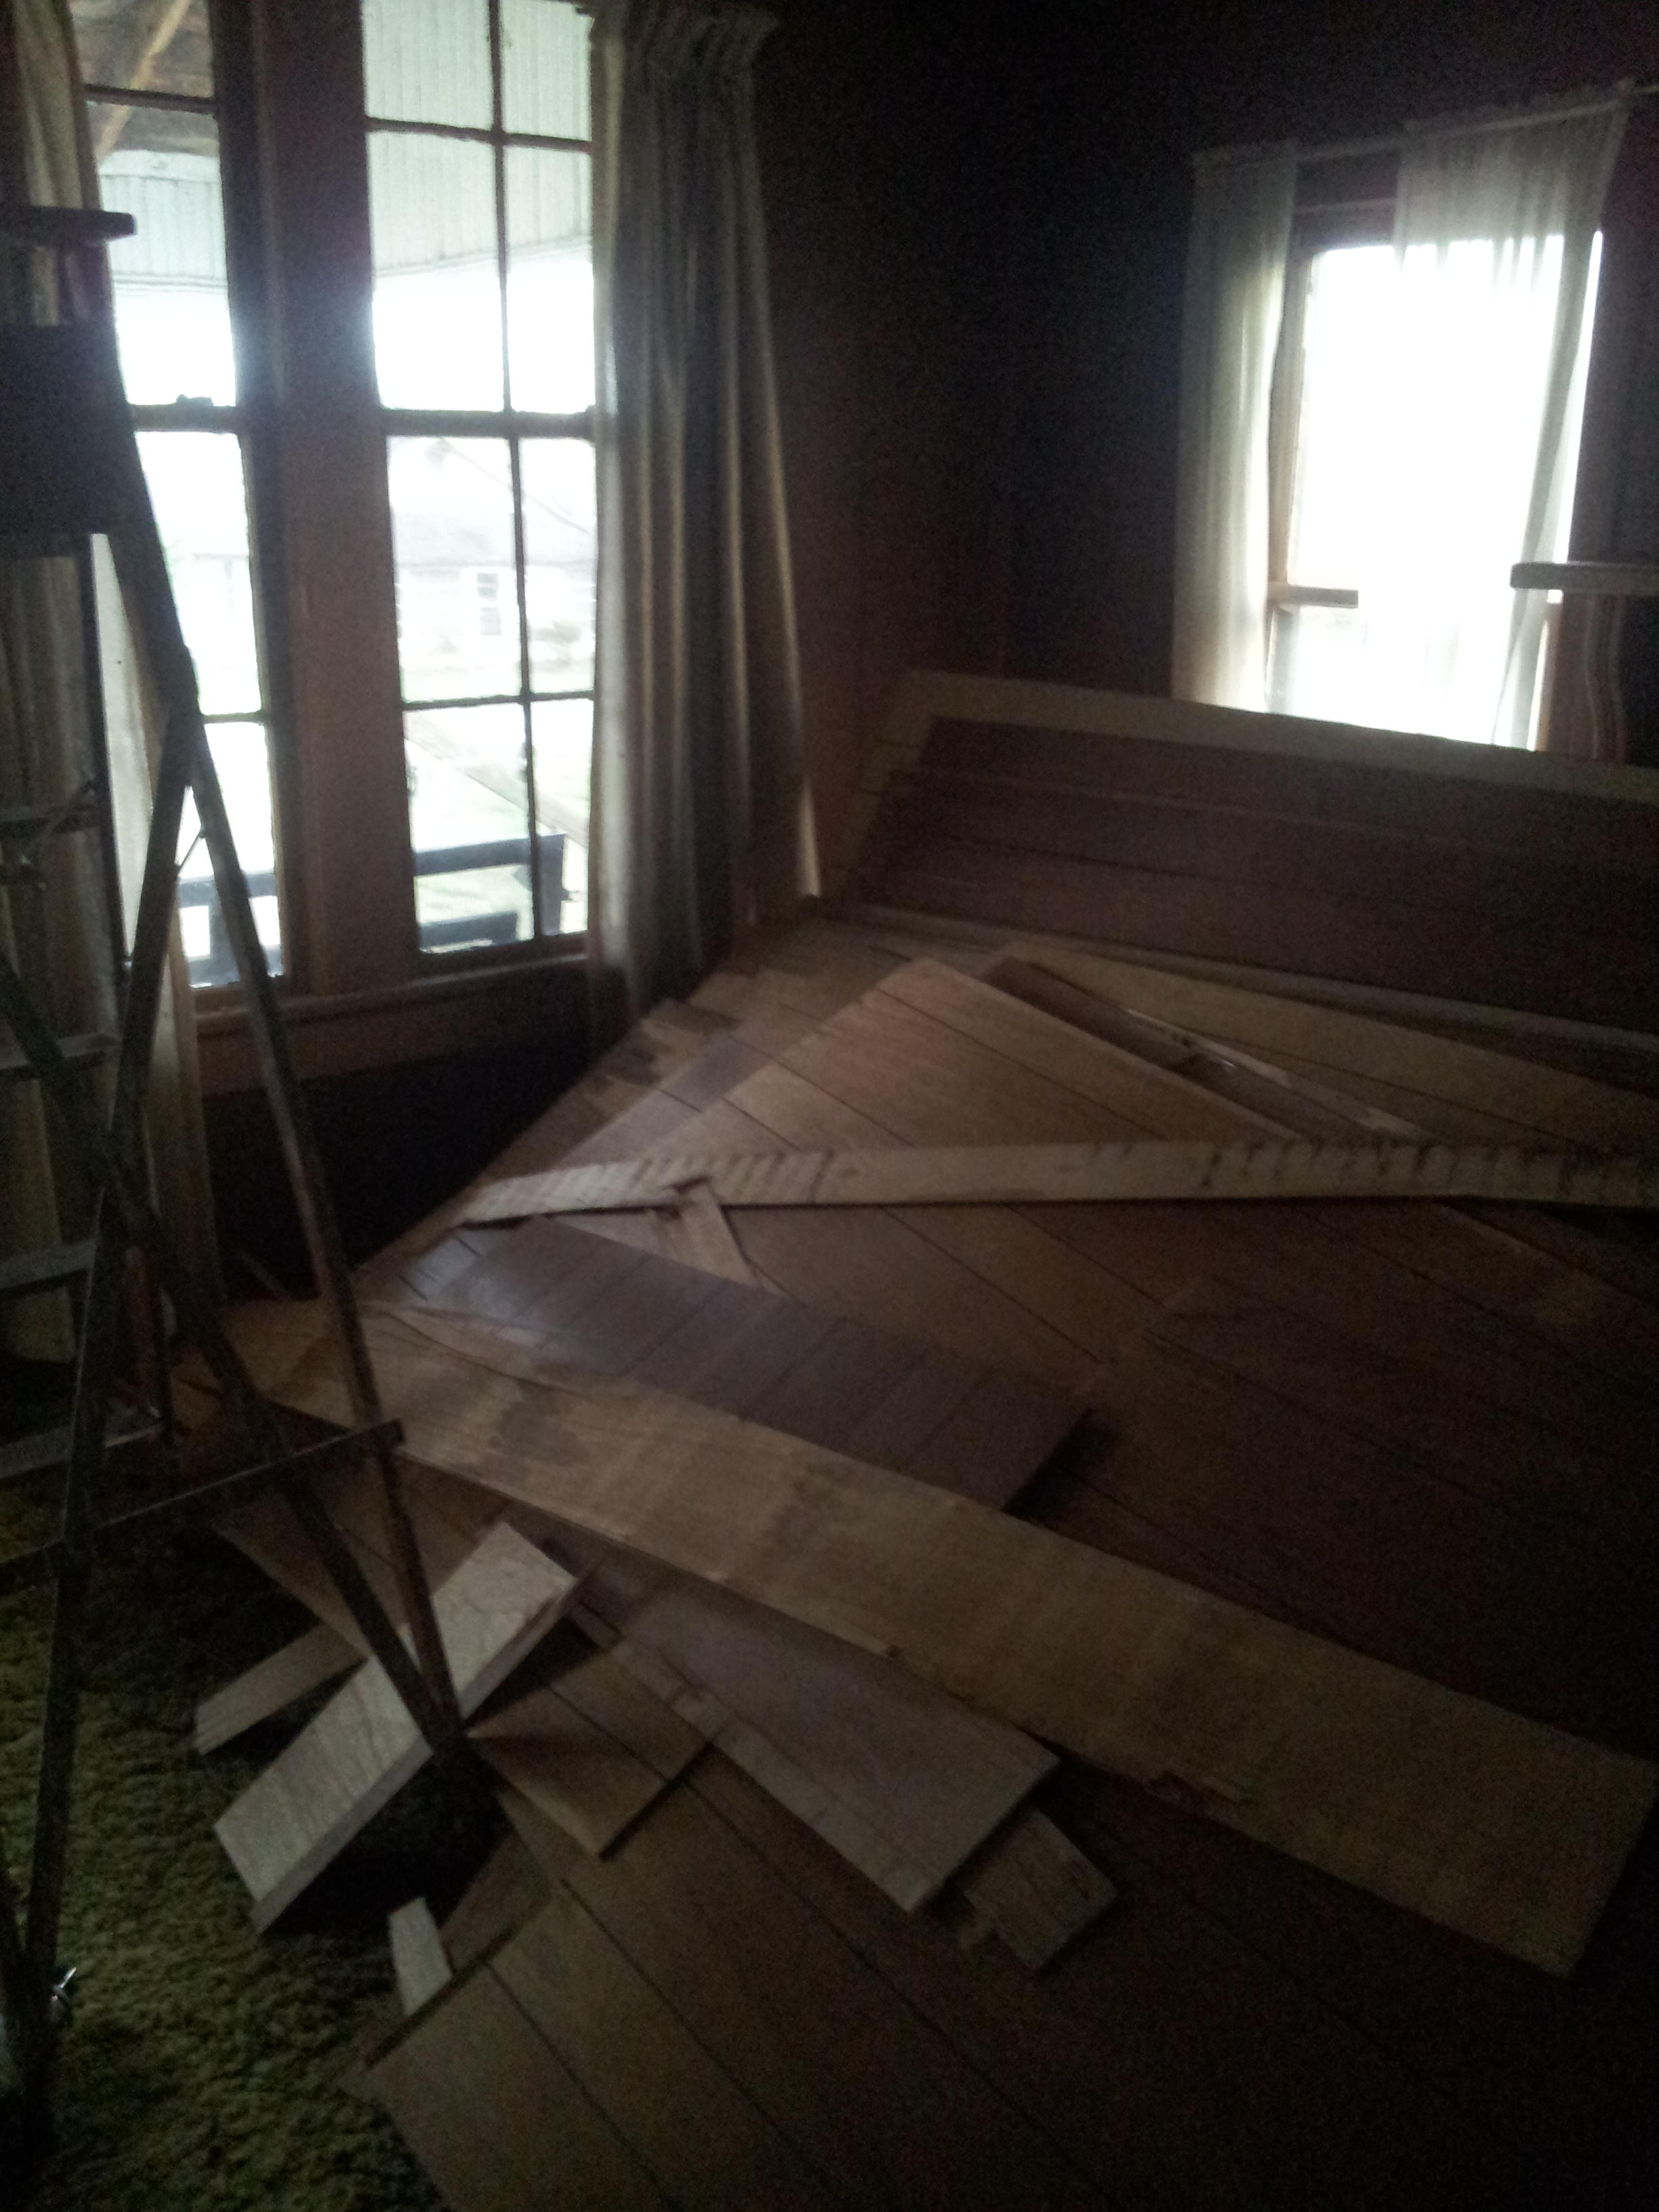 EB Loves Old Houses | Removing Wood Paneling